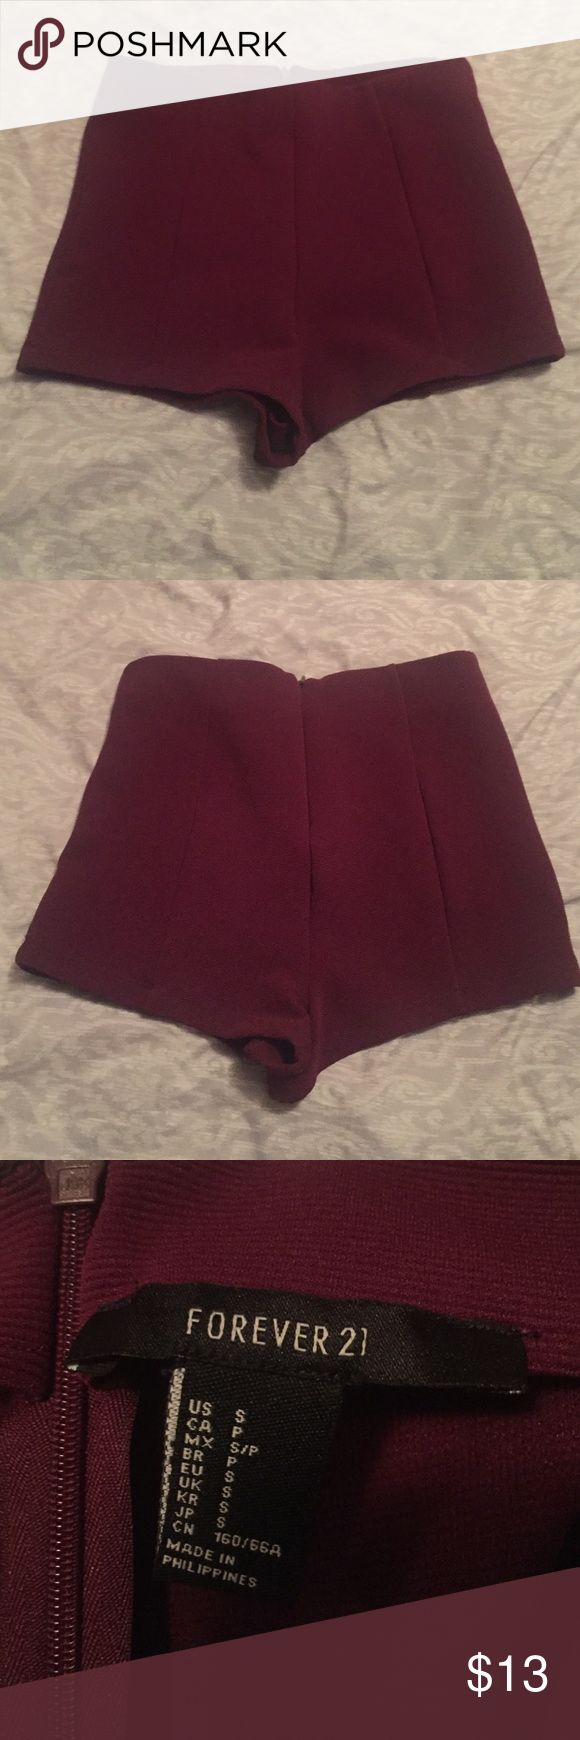 Forever 21 dress shorts burgundy shorts. stretchy material. Forever 21 Shorts